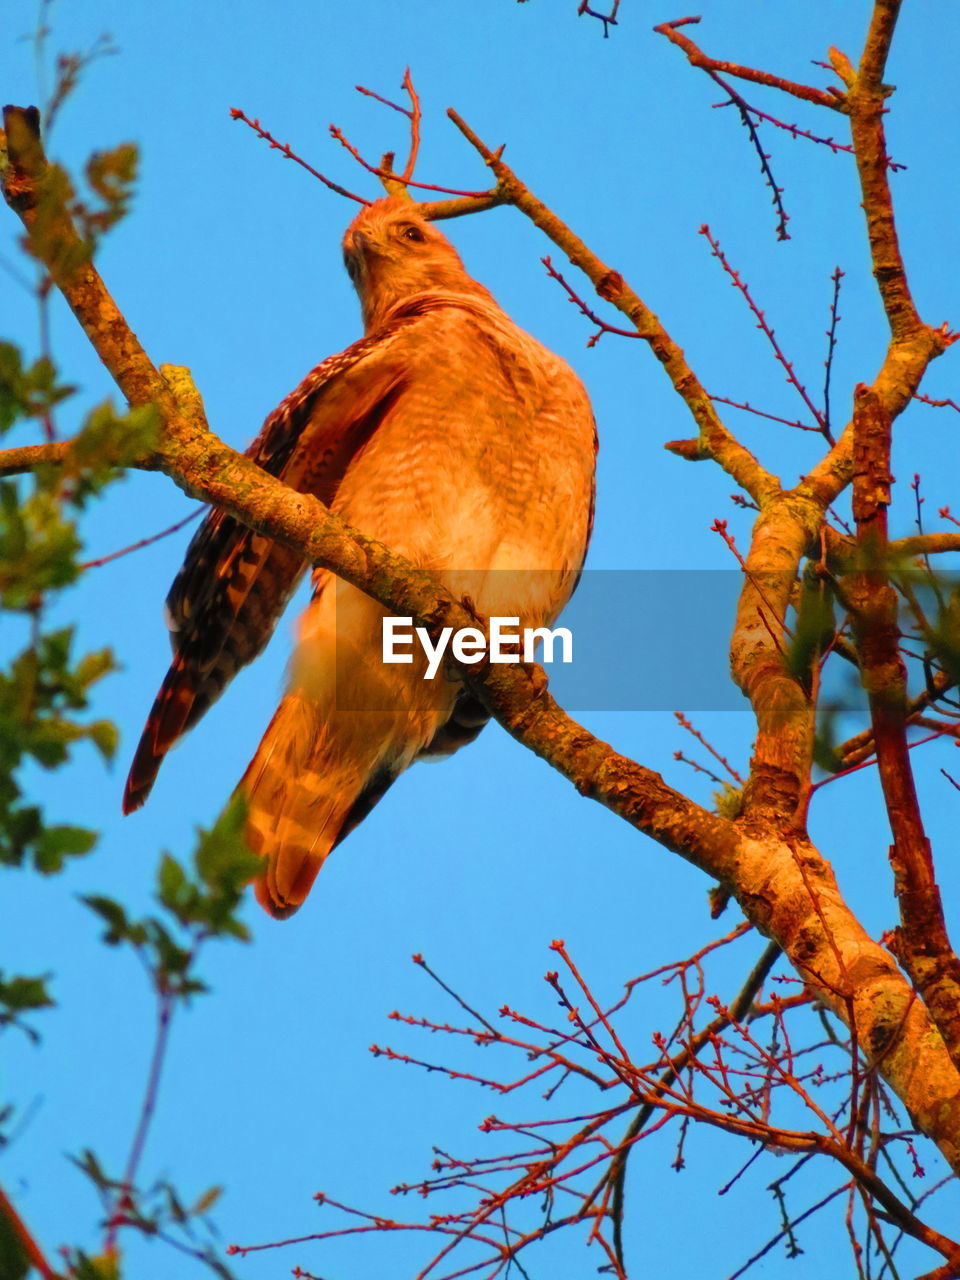 tree, low angle view, plant, branch, vertebrate, animal, one animal, animal themes, bird, sky, perching, animal wildlife, animals in the wild, nature, no people, day, bare tree, outdoors, clear sky, focus on foreground, eagle